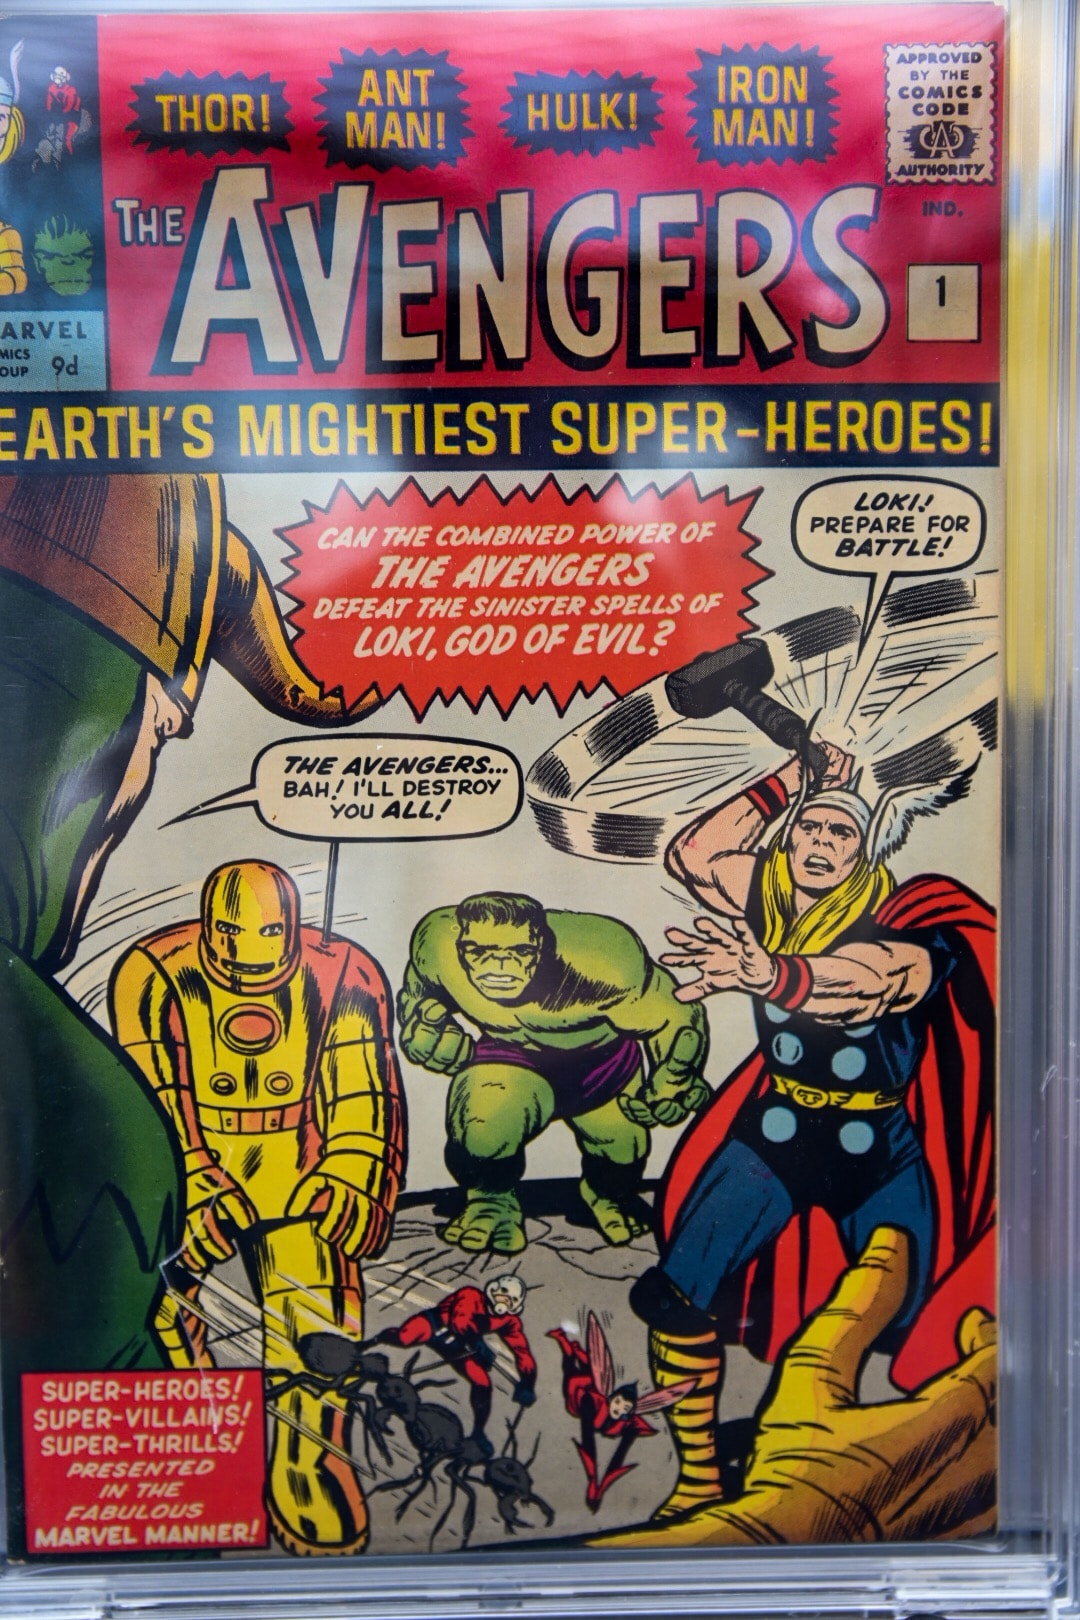 A rare first edition Avengers comic from 1963, on display at Trinity Leeds